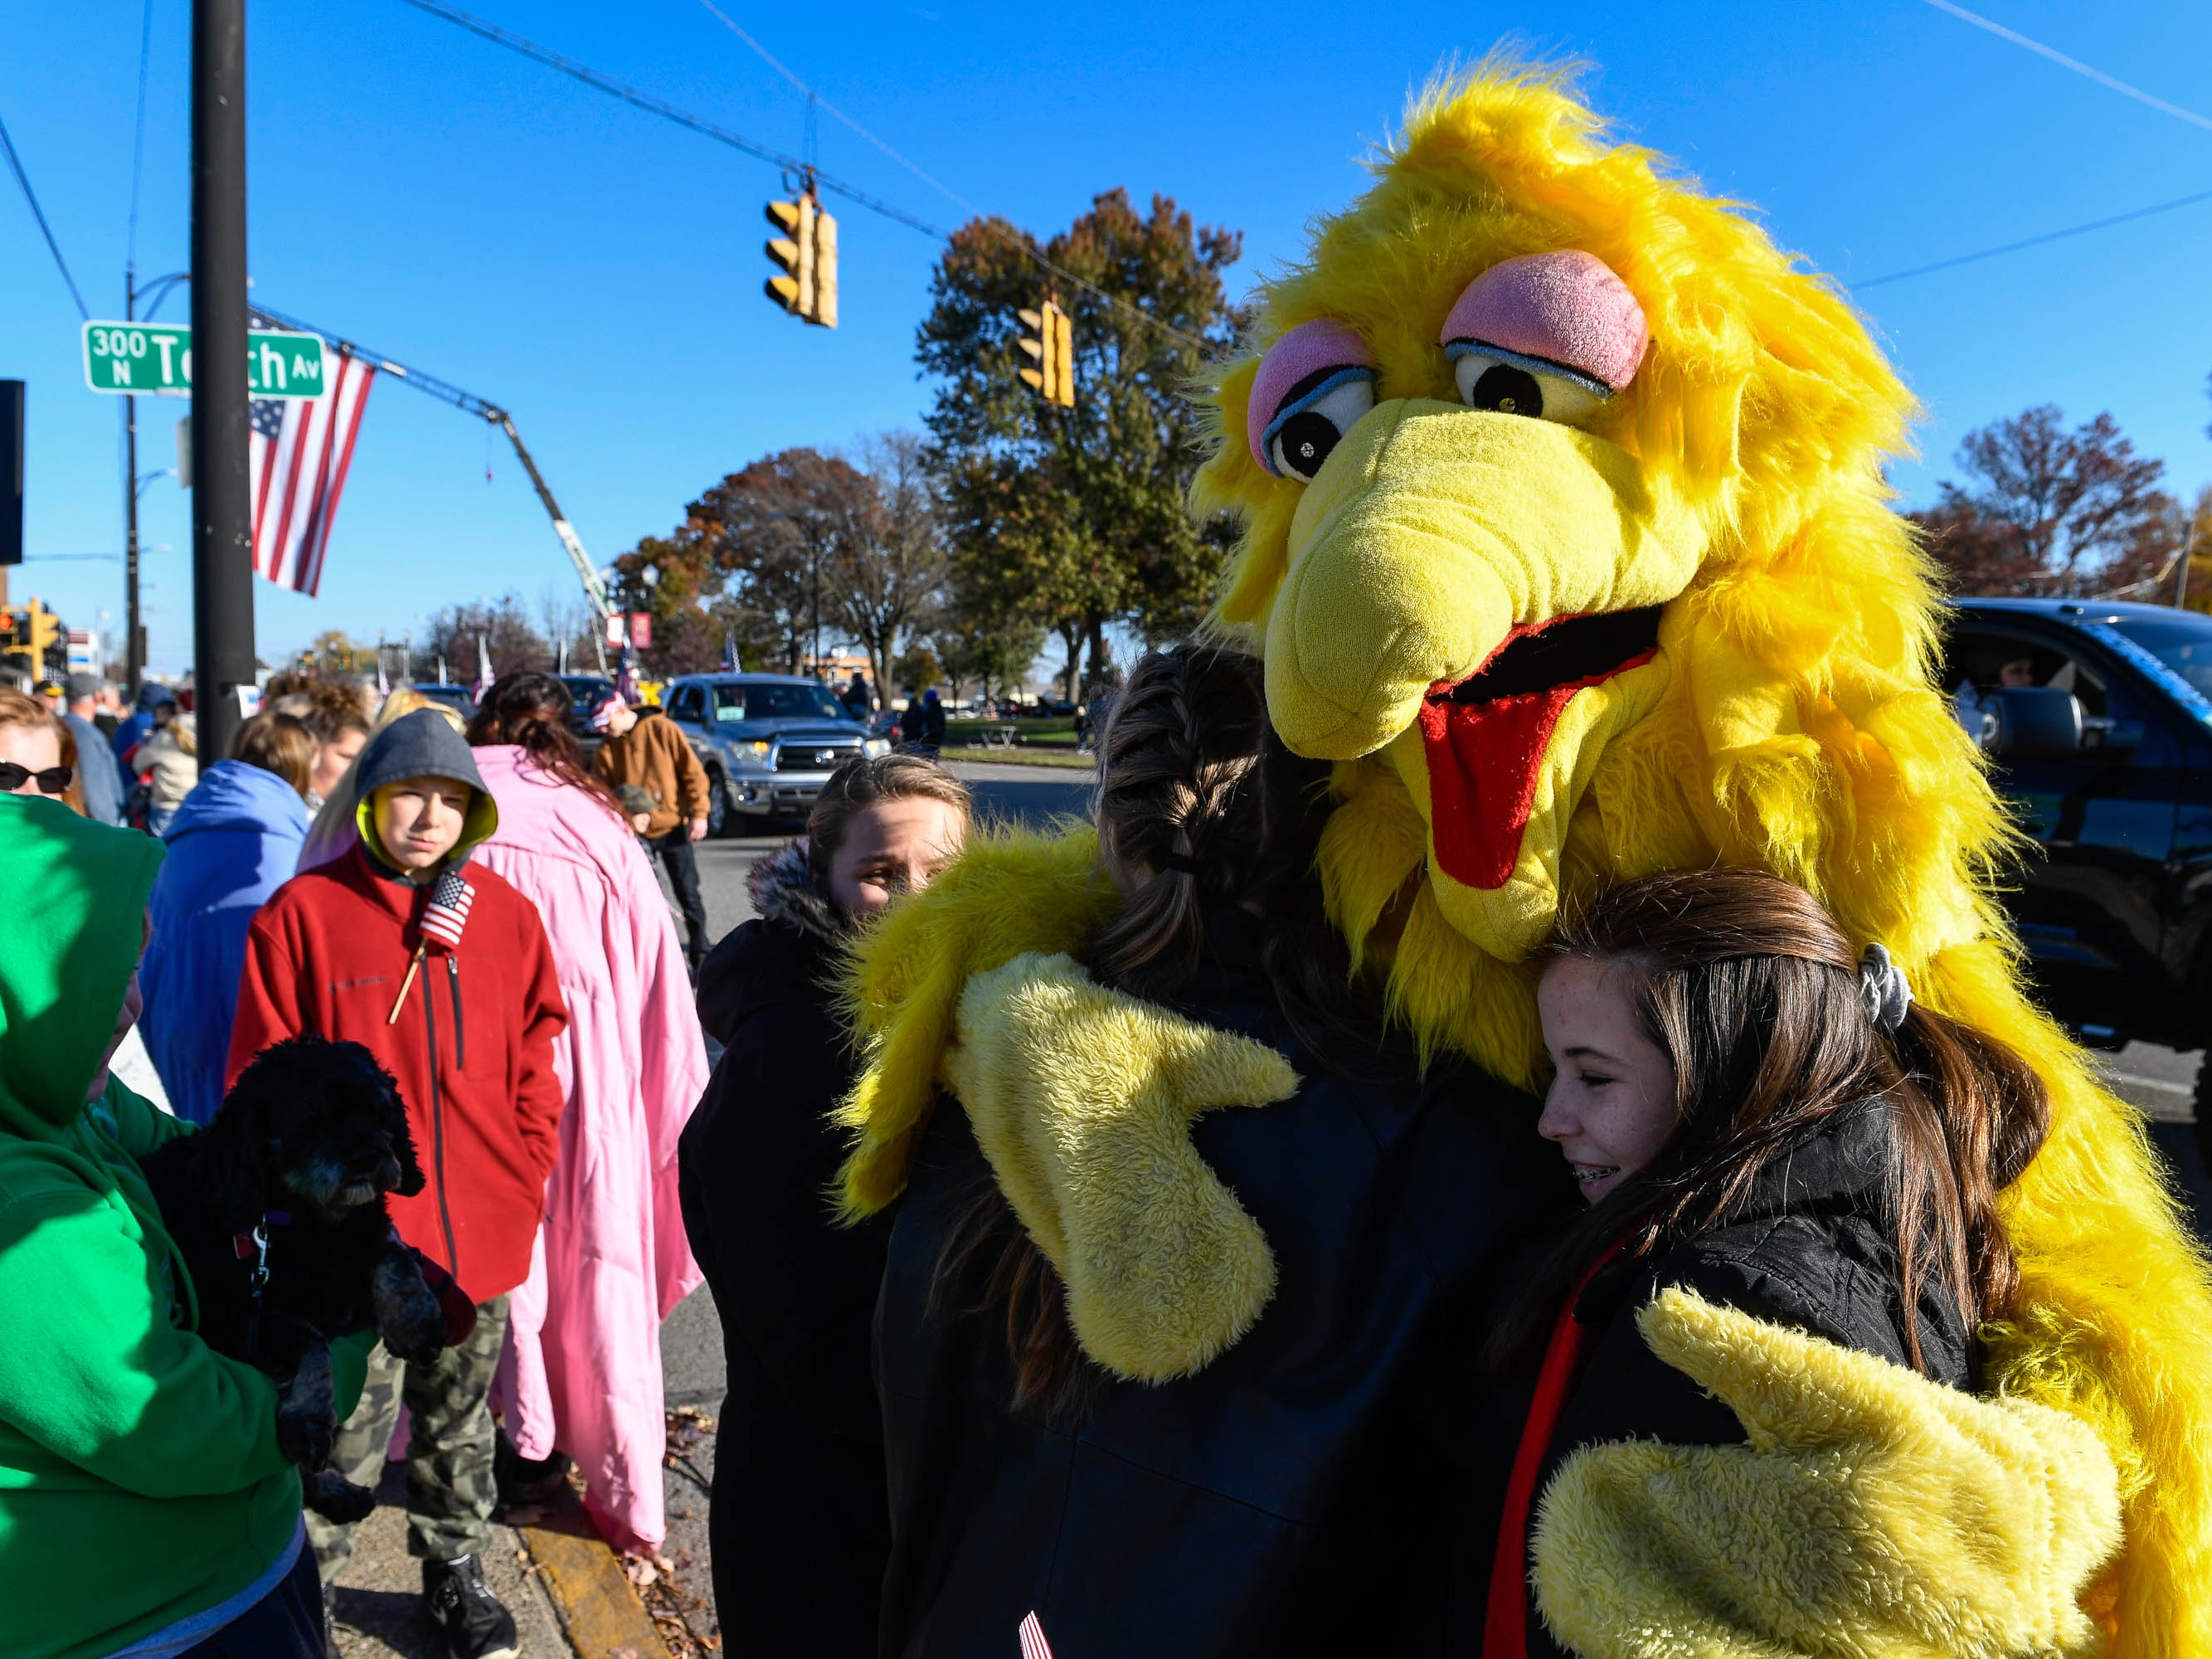 The West Side Nut Club Big Bird gathers hugs at the annual Four Freedoms Veterans Parade on Evansville's West Franklin Street Saturday, November 10, 2018.